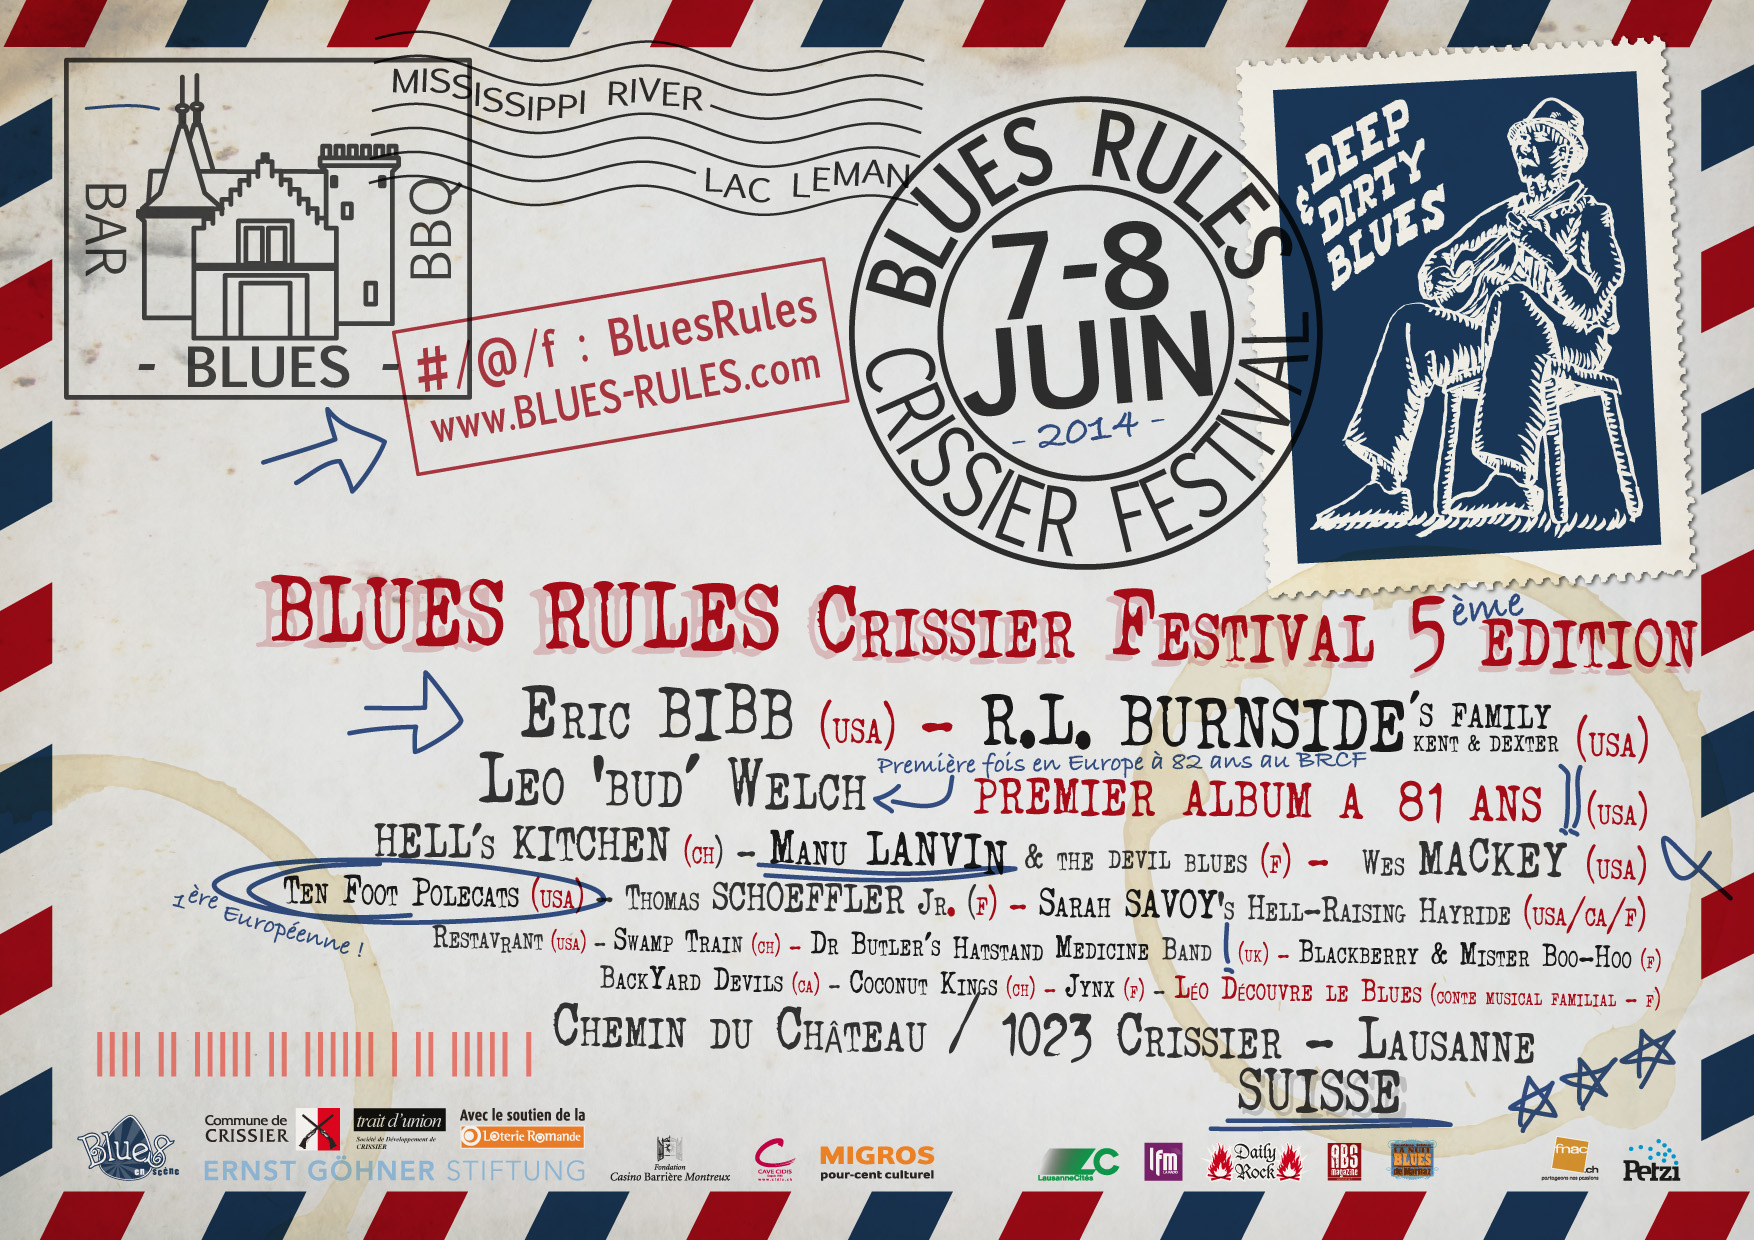 Blues Rules Crissier Festival 2014